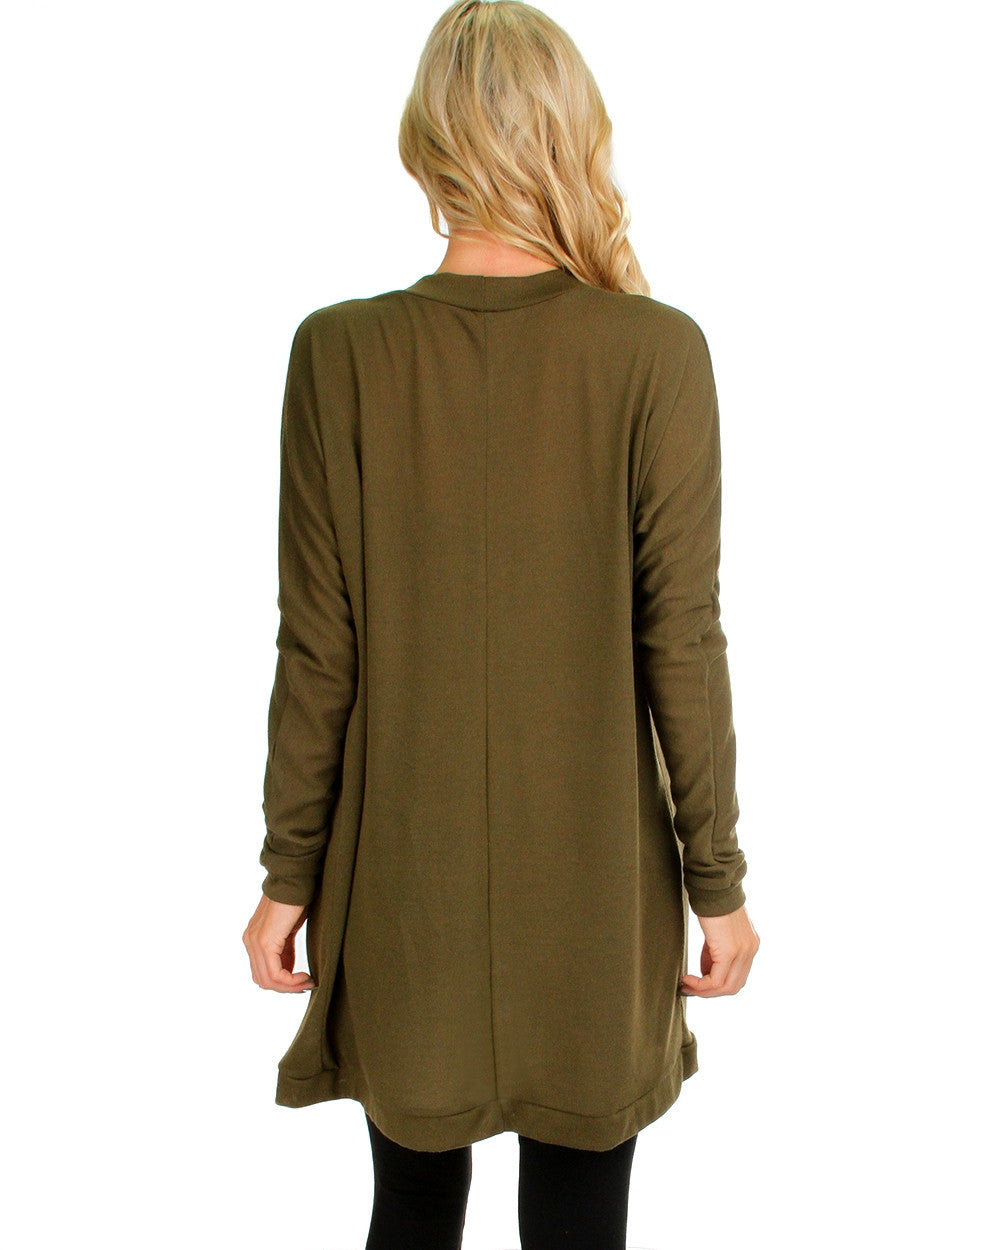 Long Open Front Cardigan In Olive